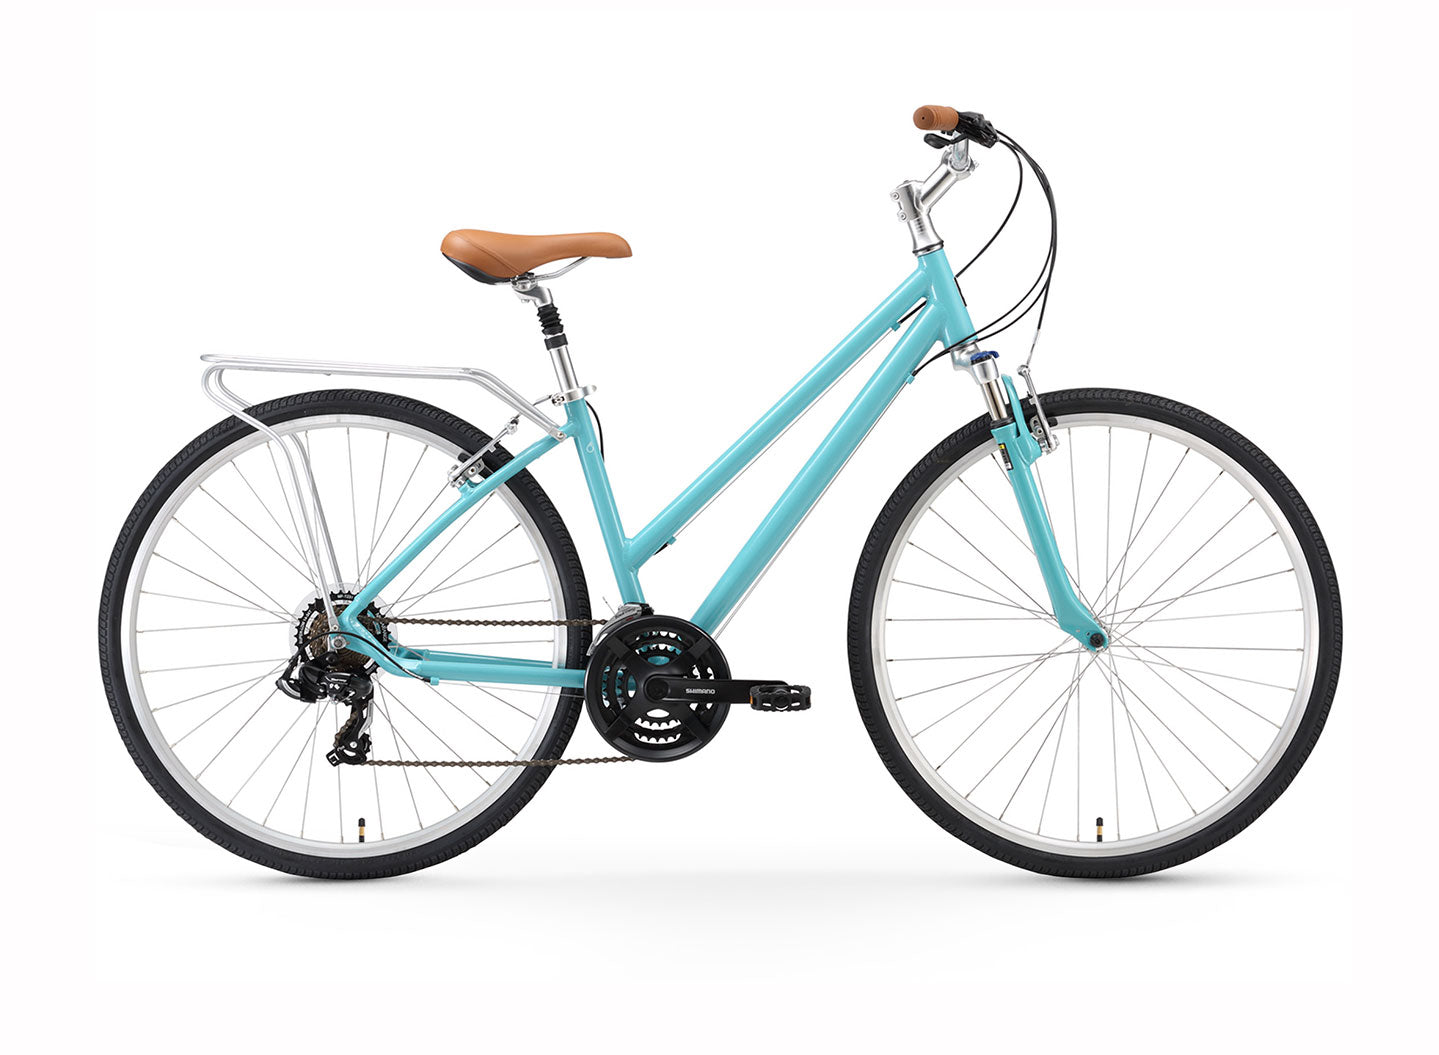 sixthreezero Pave n' Trail Women's 21 Speed Hybrid Bike